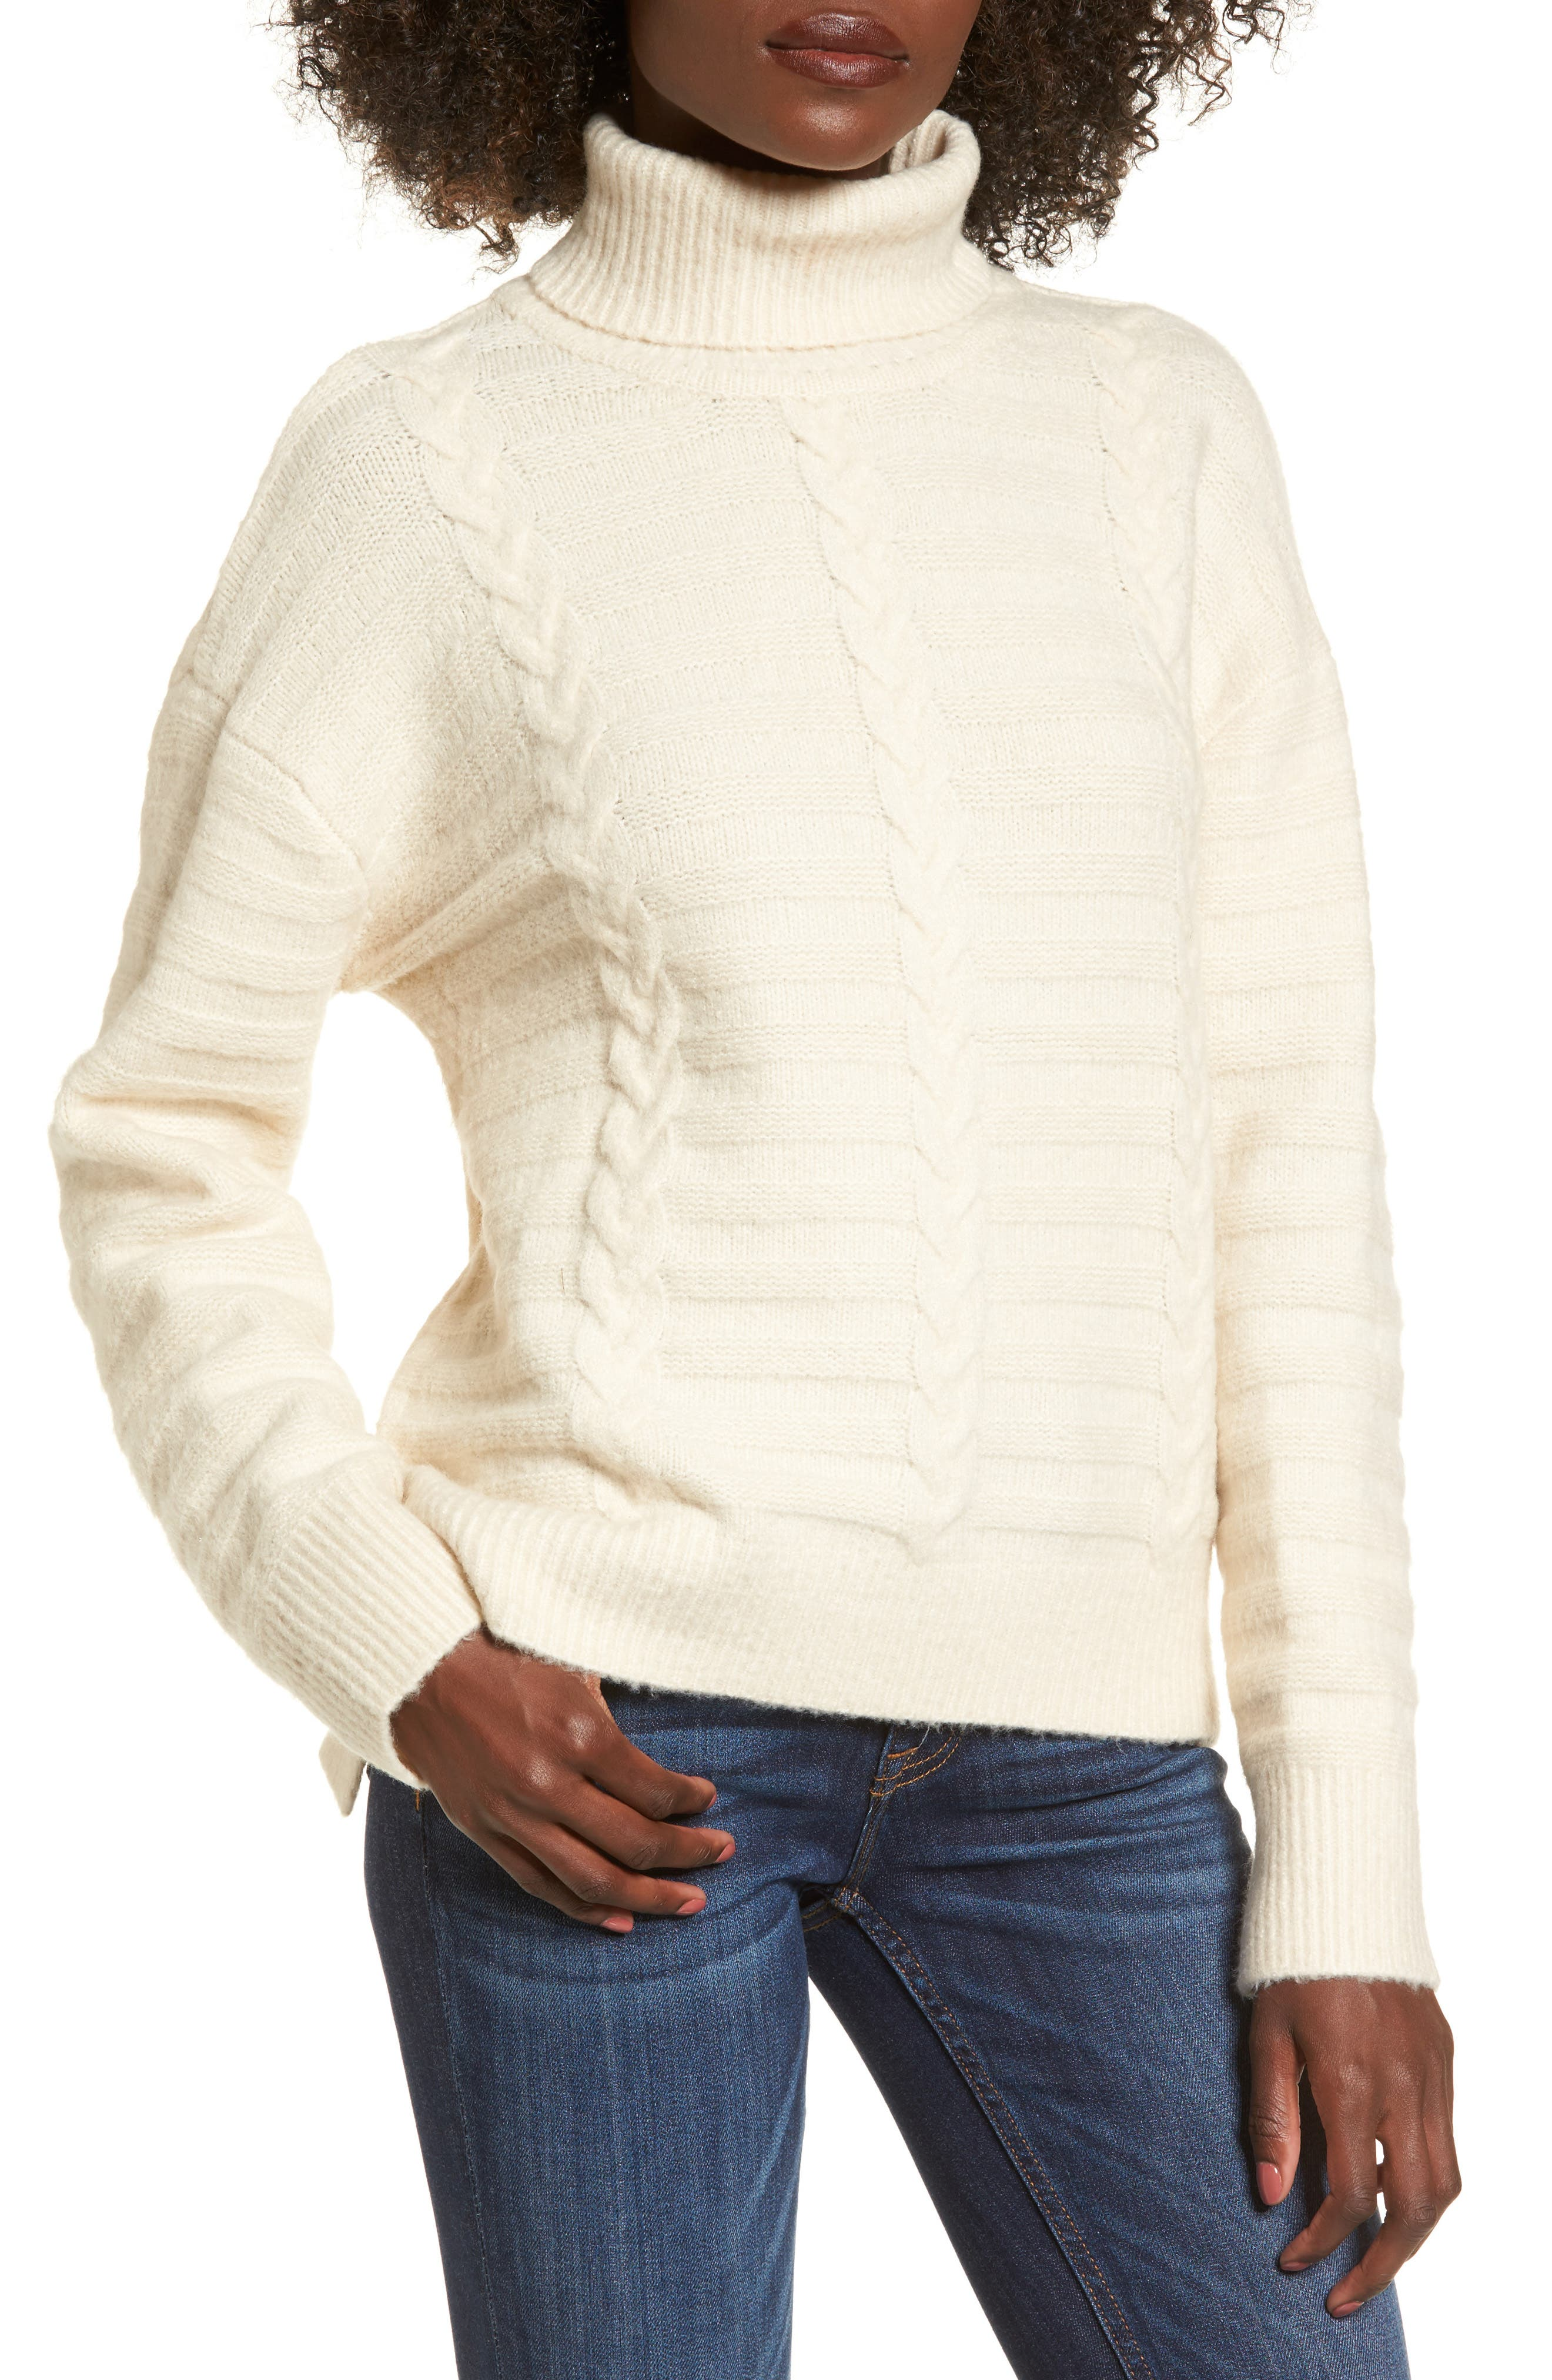 Turtleneck Sweater,                             Main thumbnail 1, color,                             900